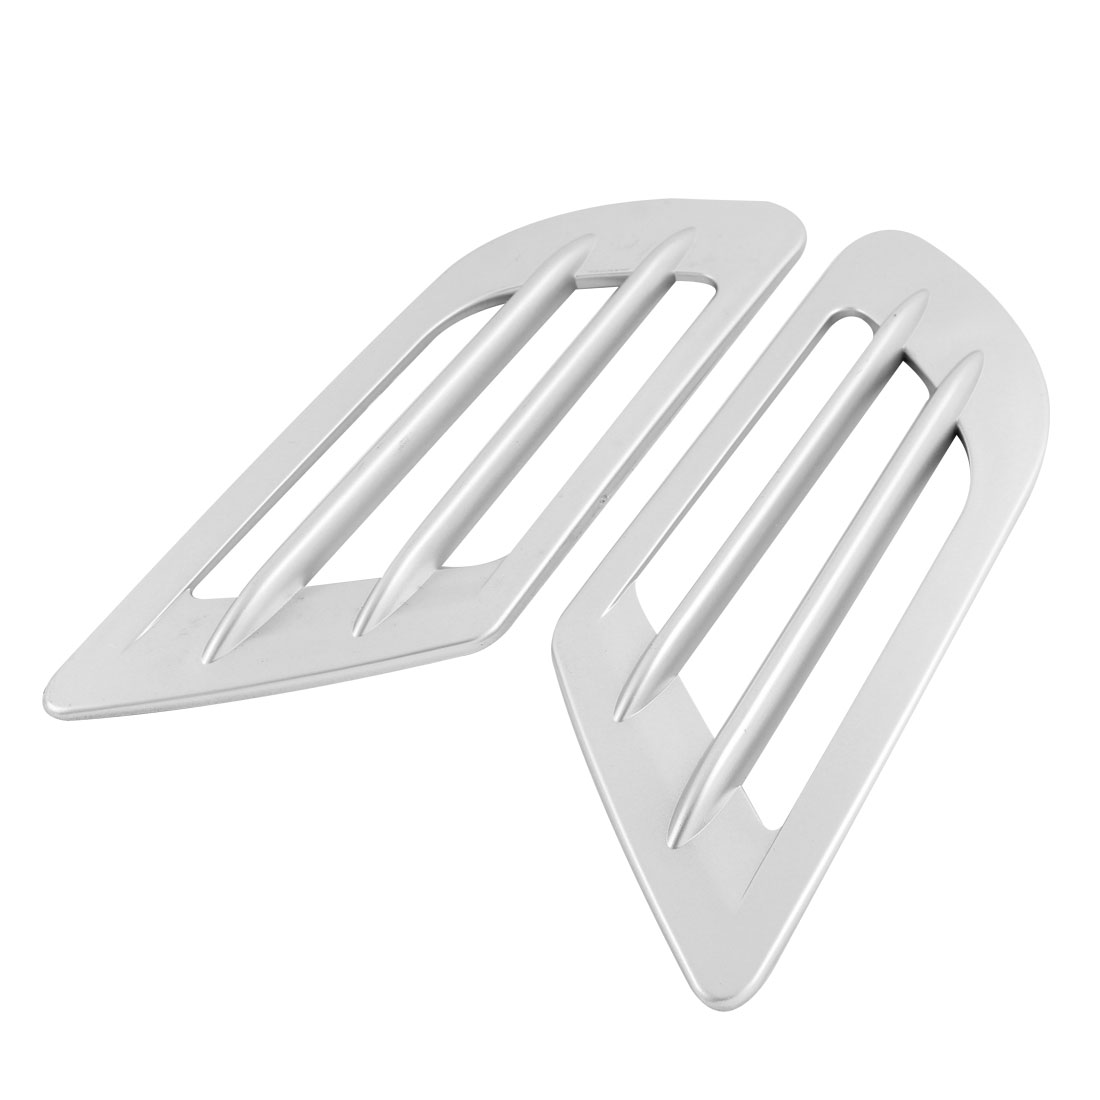 2pcs Universal Car Plastic Decor Bonnet Air Flow Intake Sticker Silver Tone